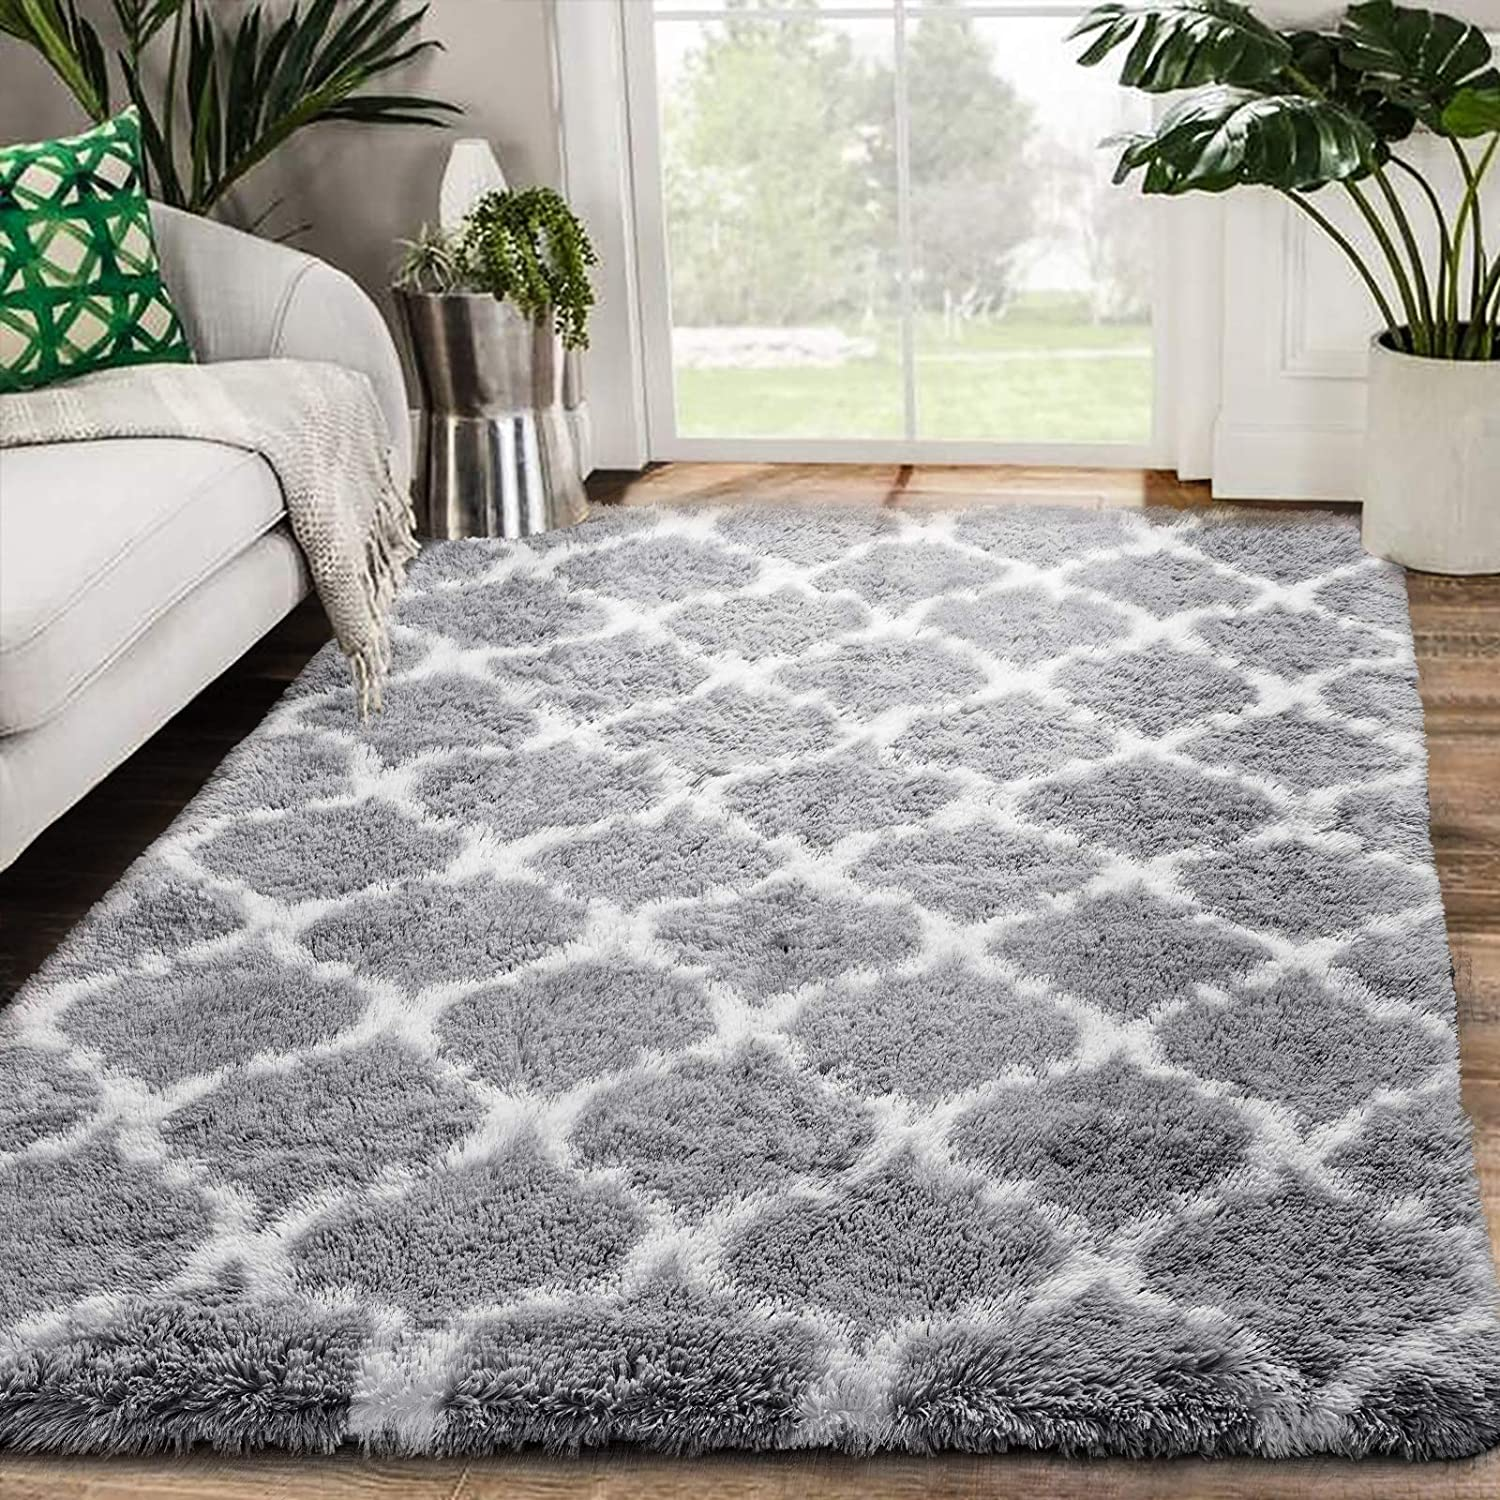 Zareas Super sale Modern Abstract Soft Fluffy Area Rugs 4'x Living for Room In a popularity